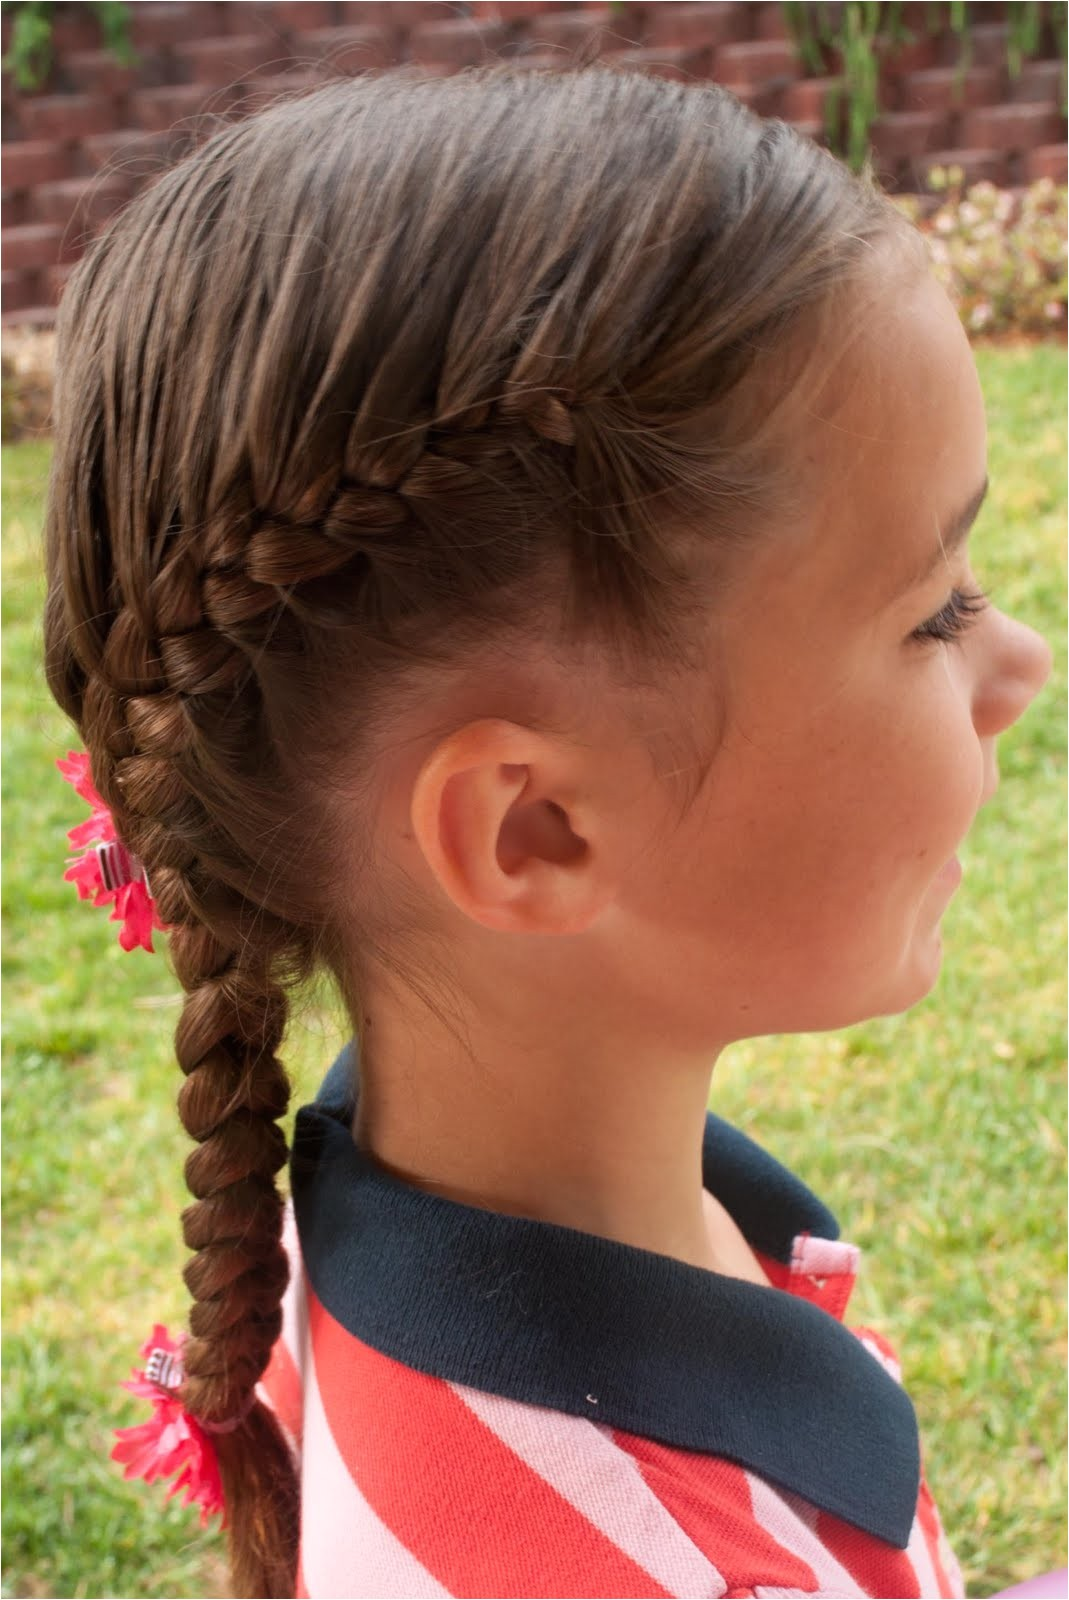 French Braid Hairstyles for Kids French Braid Hairstyles